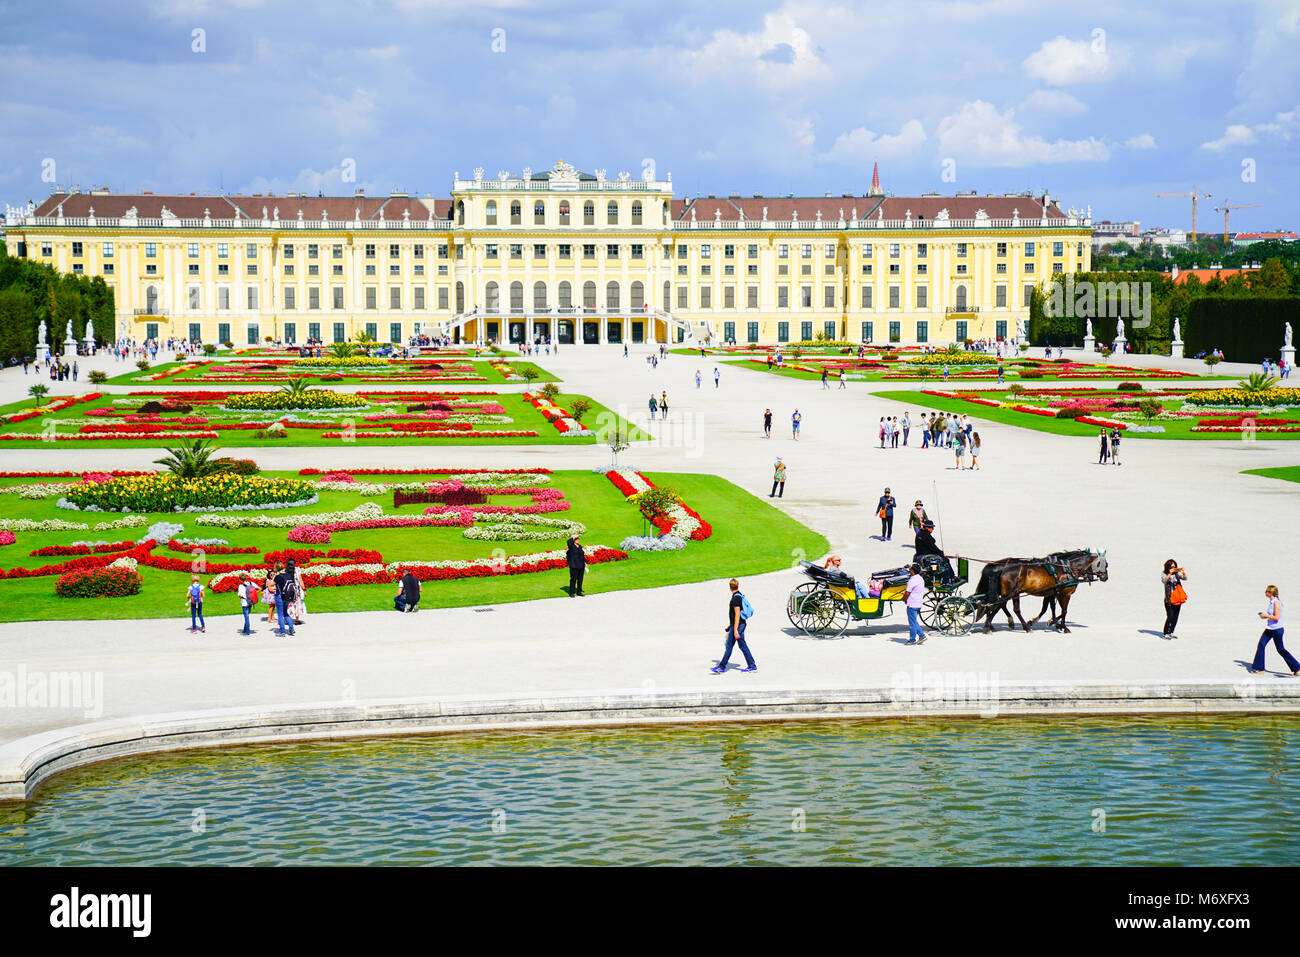 VIENNA,AUSTRIA - SEPTEMBER 4 2017; Tourists and horse and carriage in frontt Baroque architectural Schonbrunn imperial - Stock Image